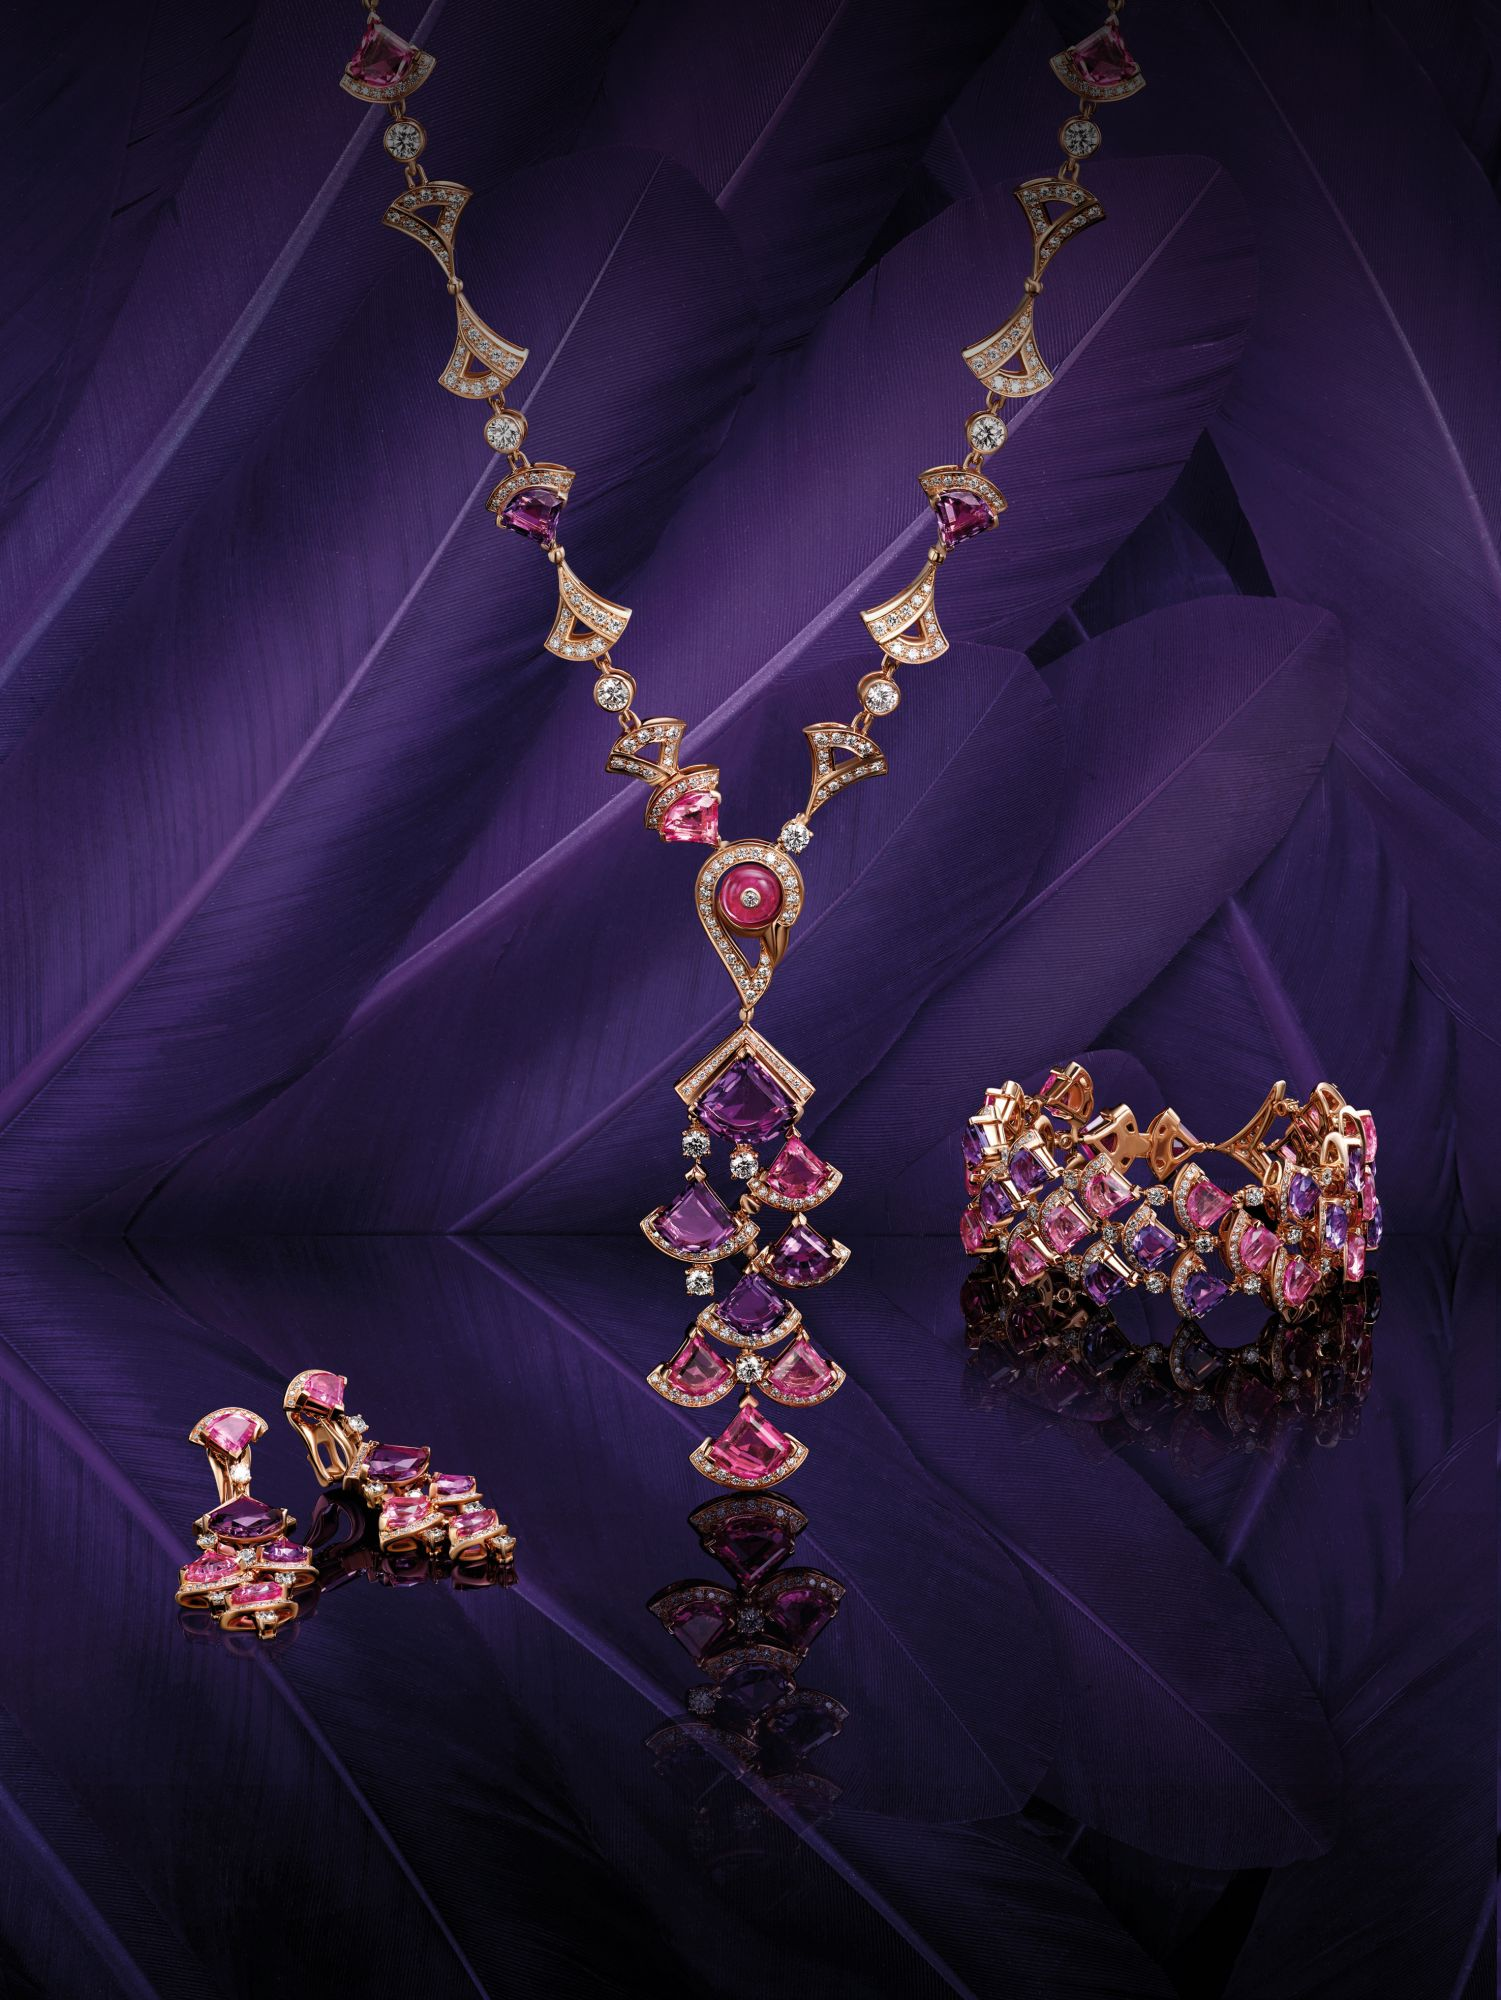 Bulgari's New Diva Collection Is The Stuff Of Dreams